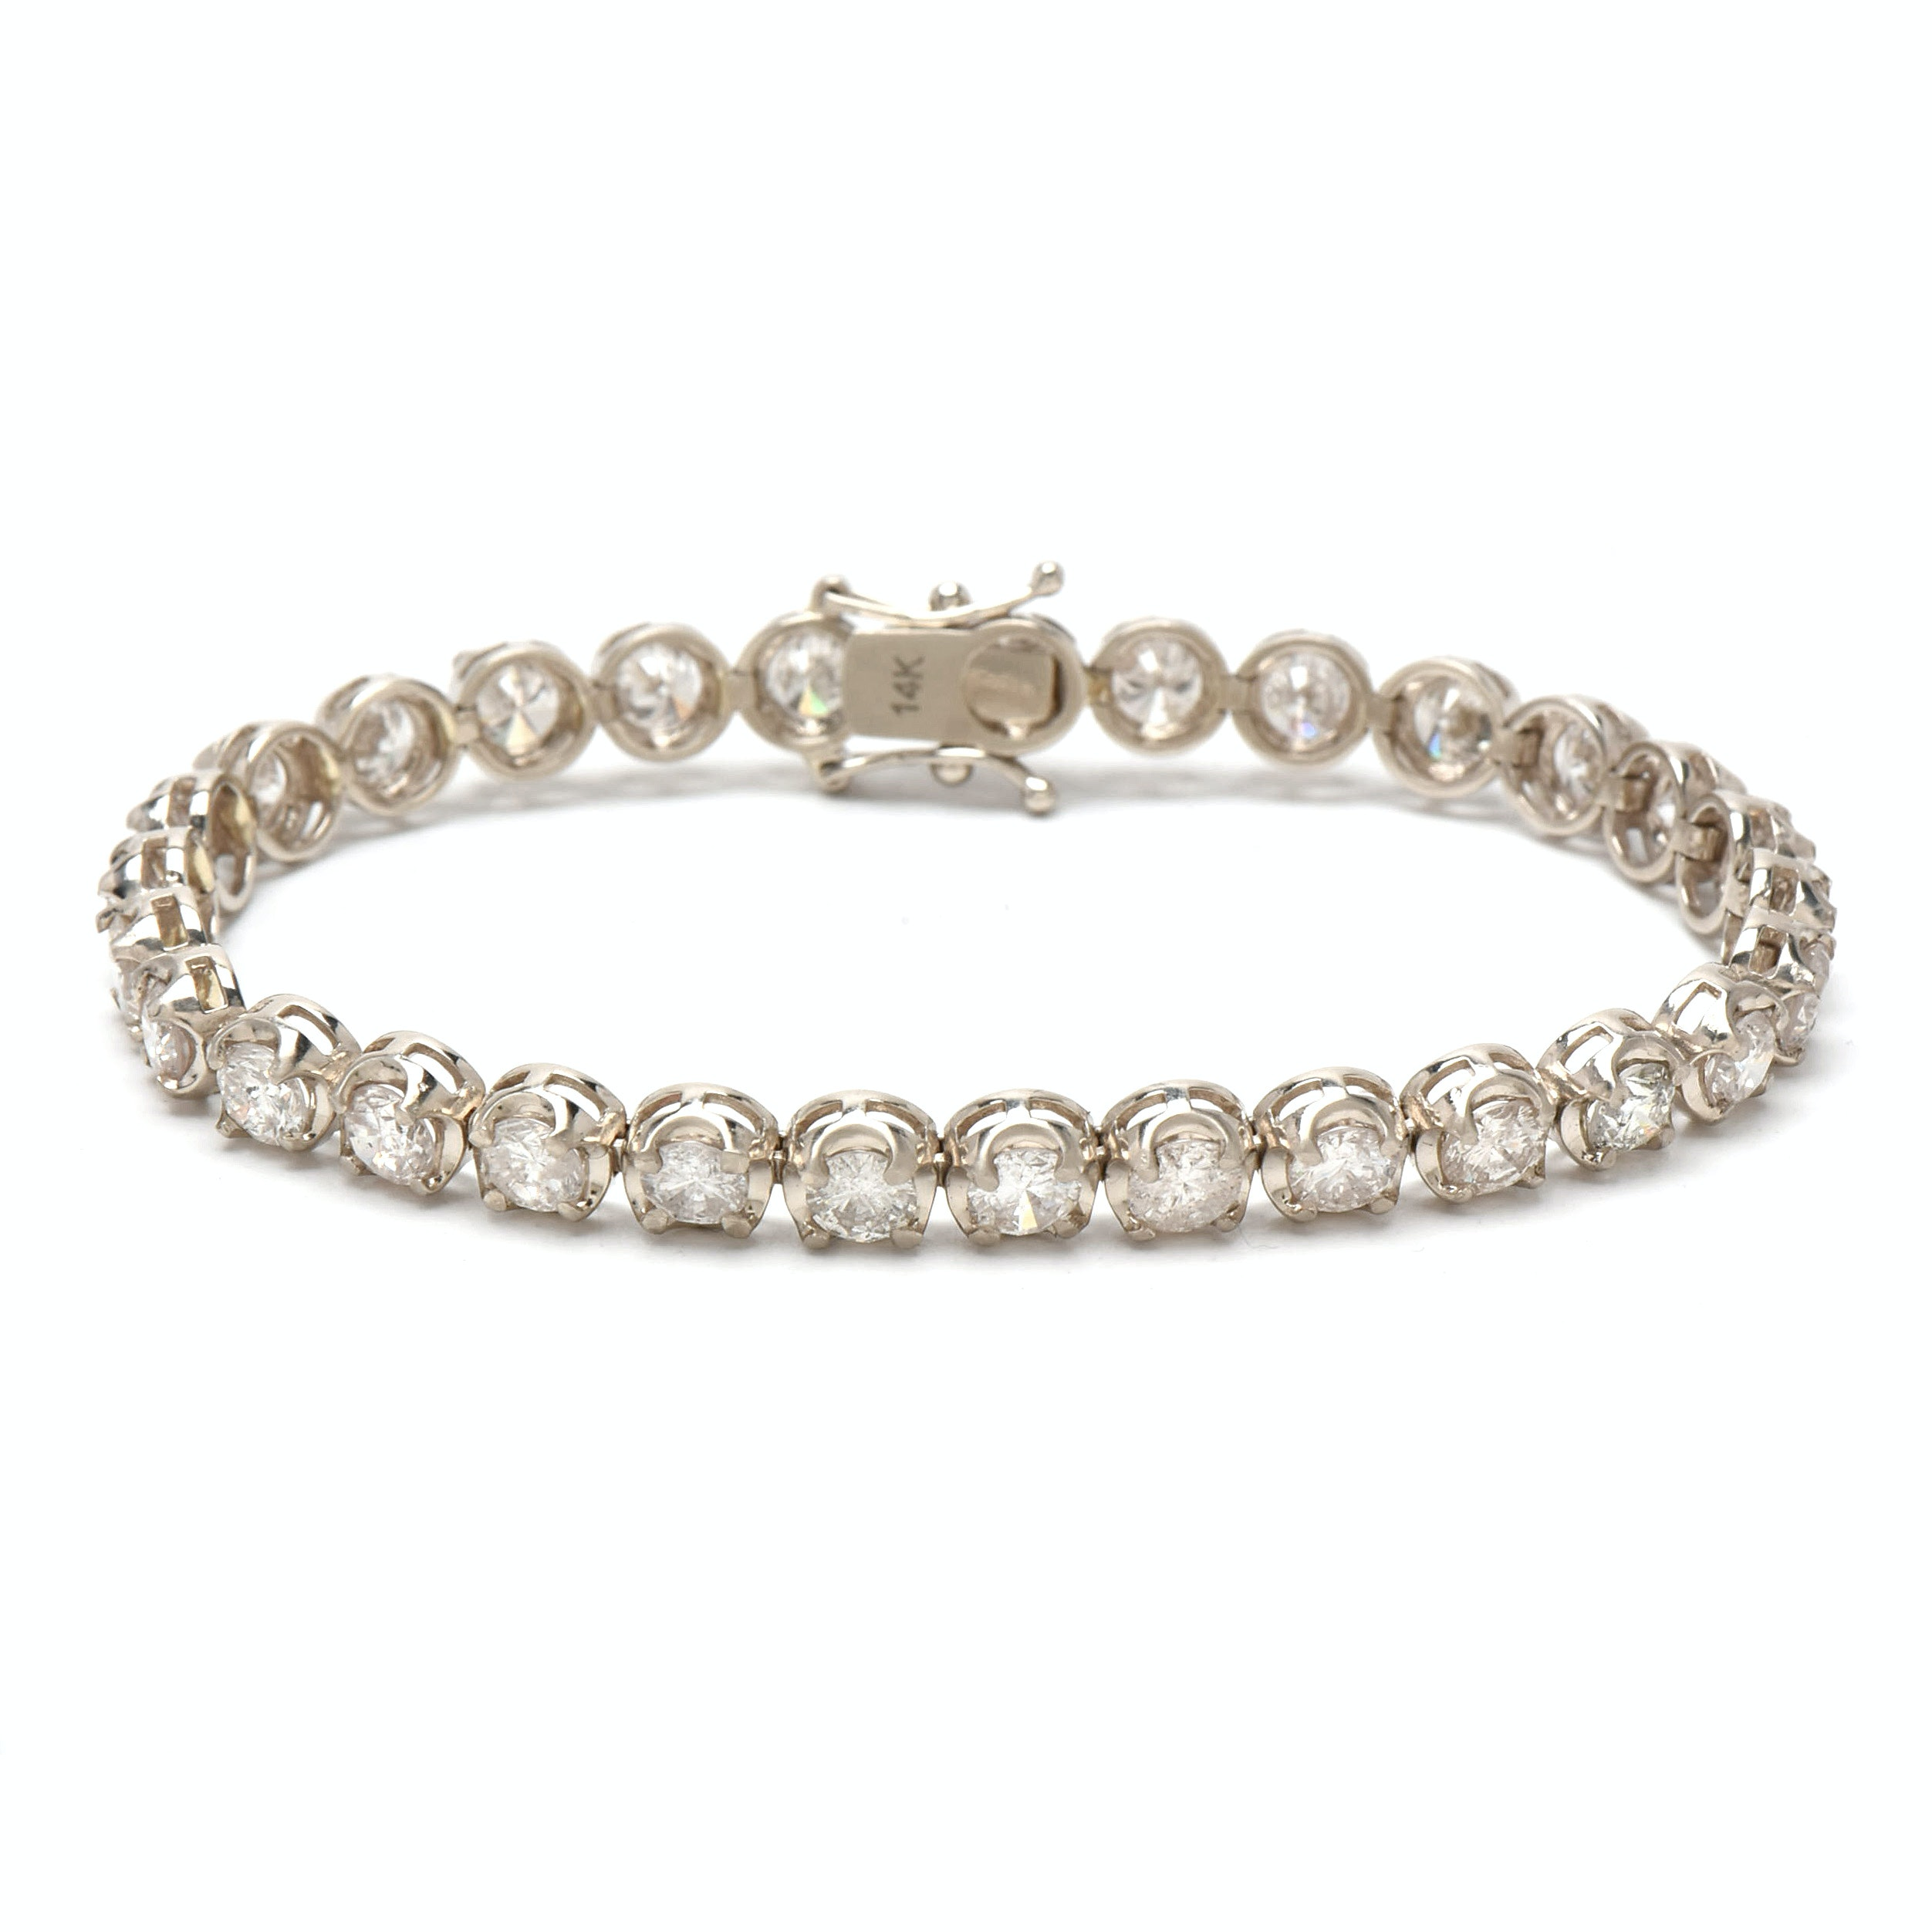 14K White Gold 9.55 CTW Diamond Tennis Bracelet